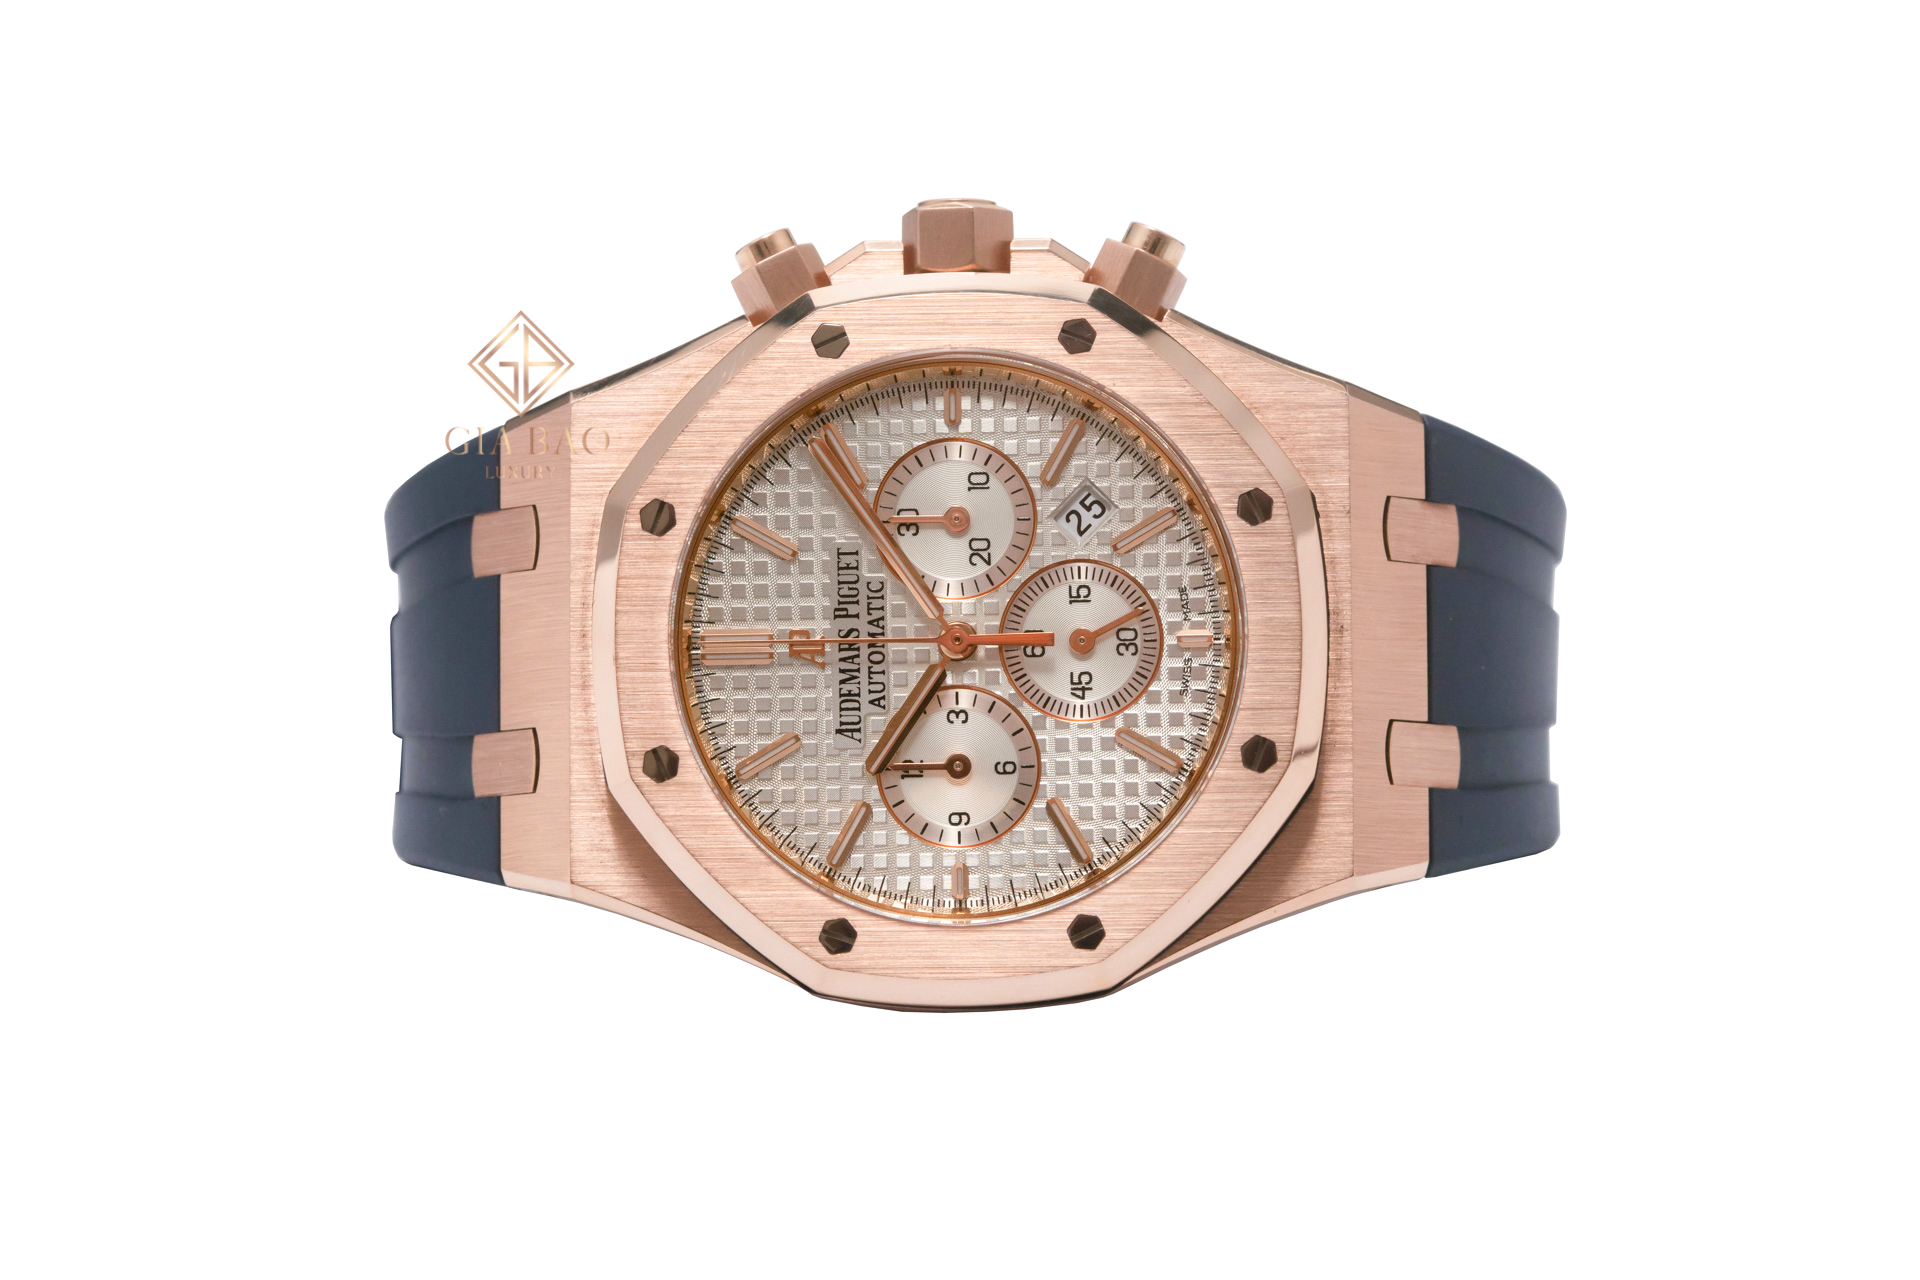 Đồng Hồ Audemars Piguet Royal Oak Chronograph 41mm 26320OR.OO.D088CR.01